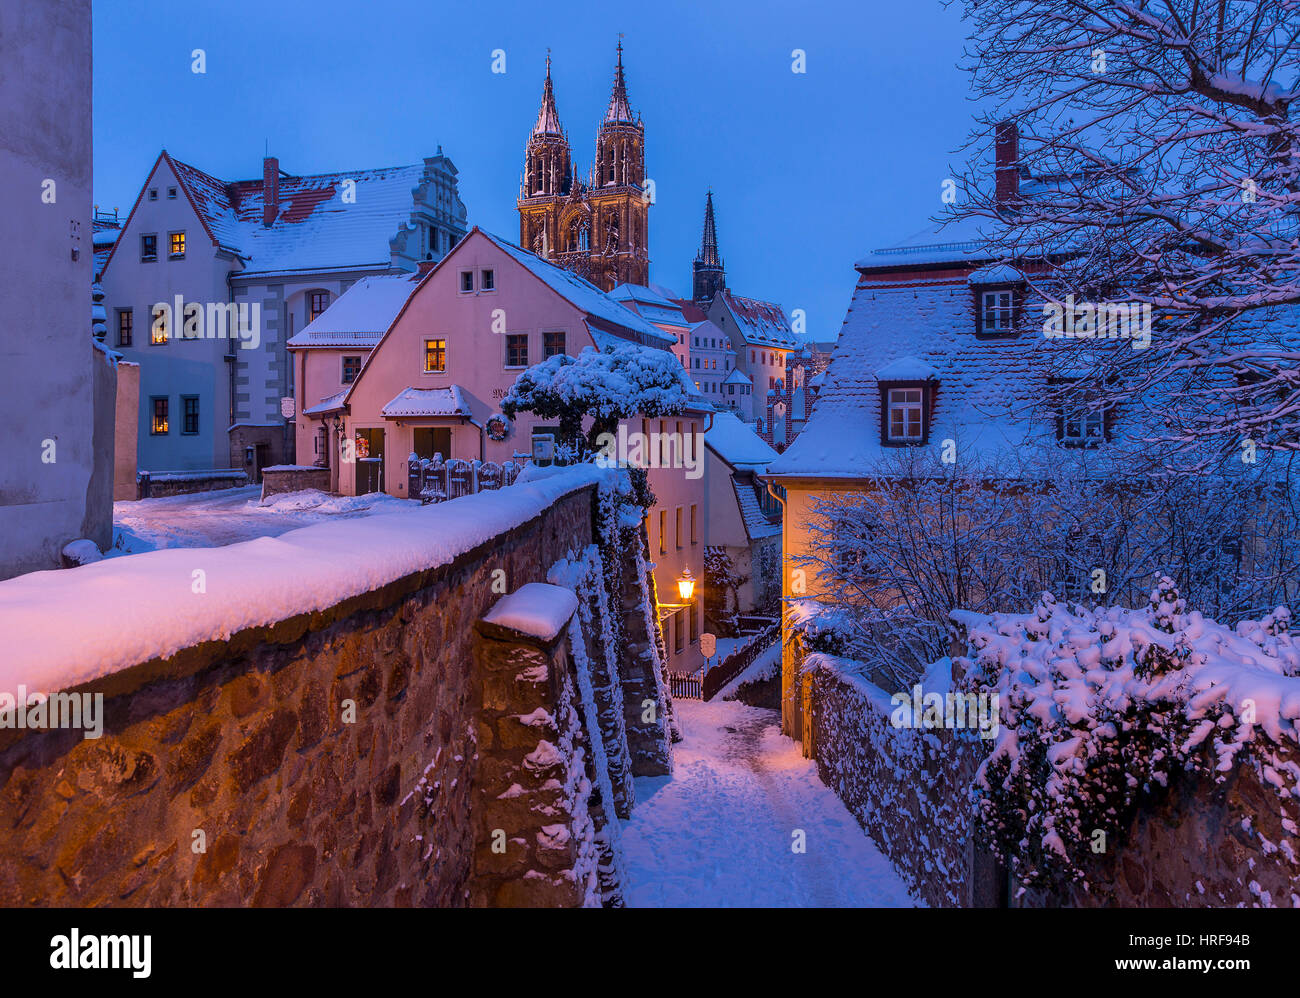 Historic centre in winter, view to the cathedral with stairs Rote Stufen, Dawn, Meissen, Saxony, Germany - Stock Image